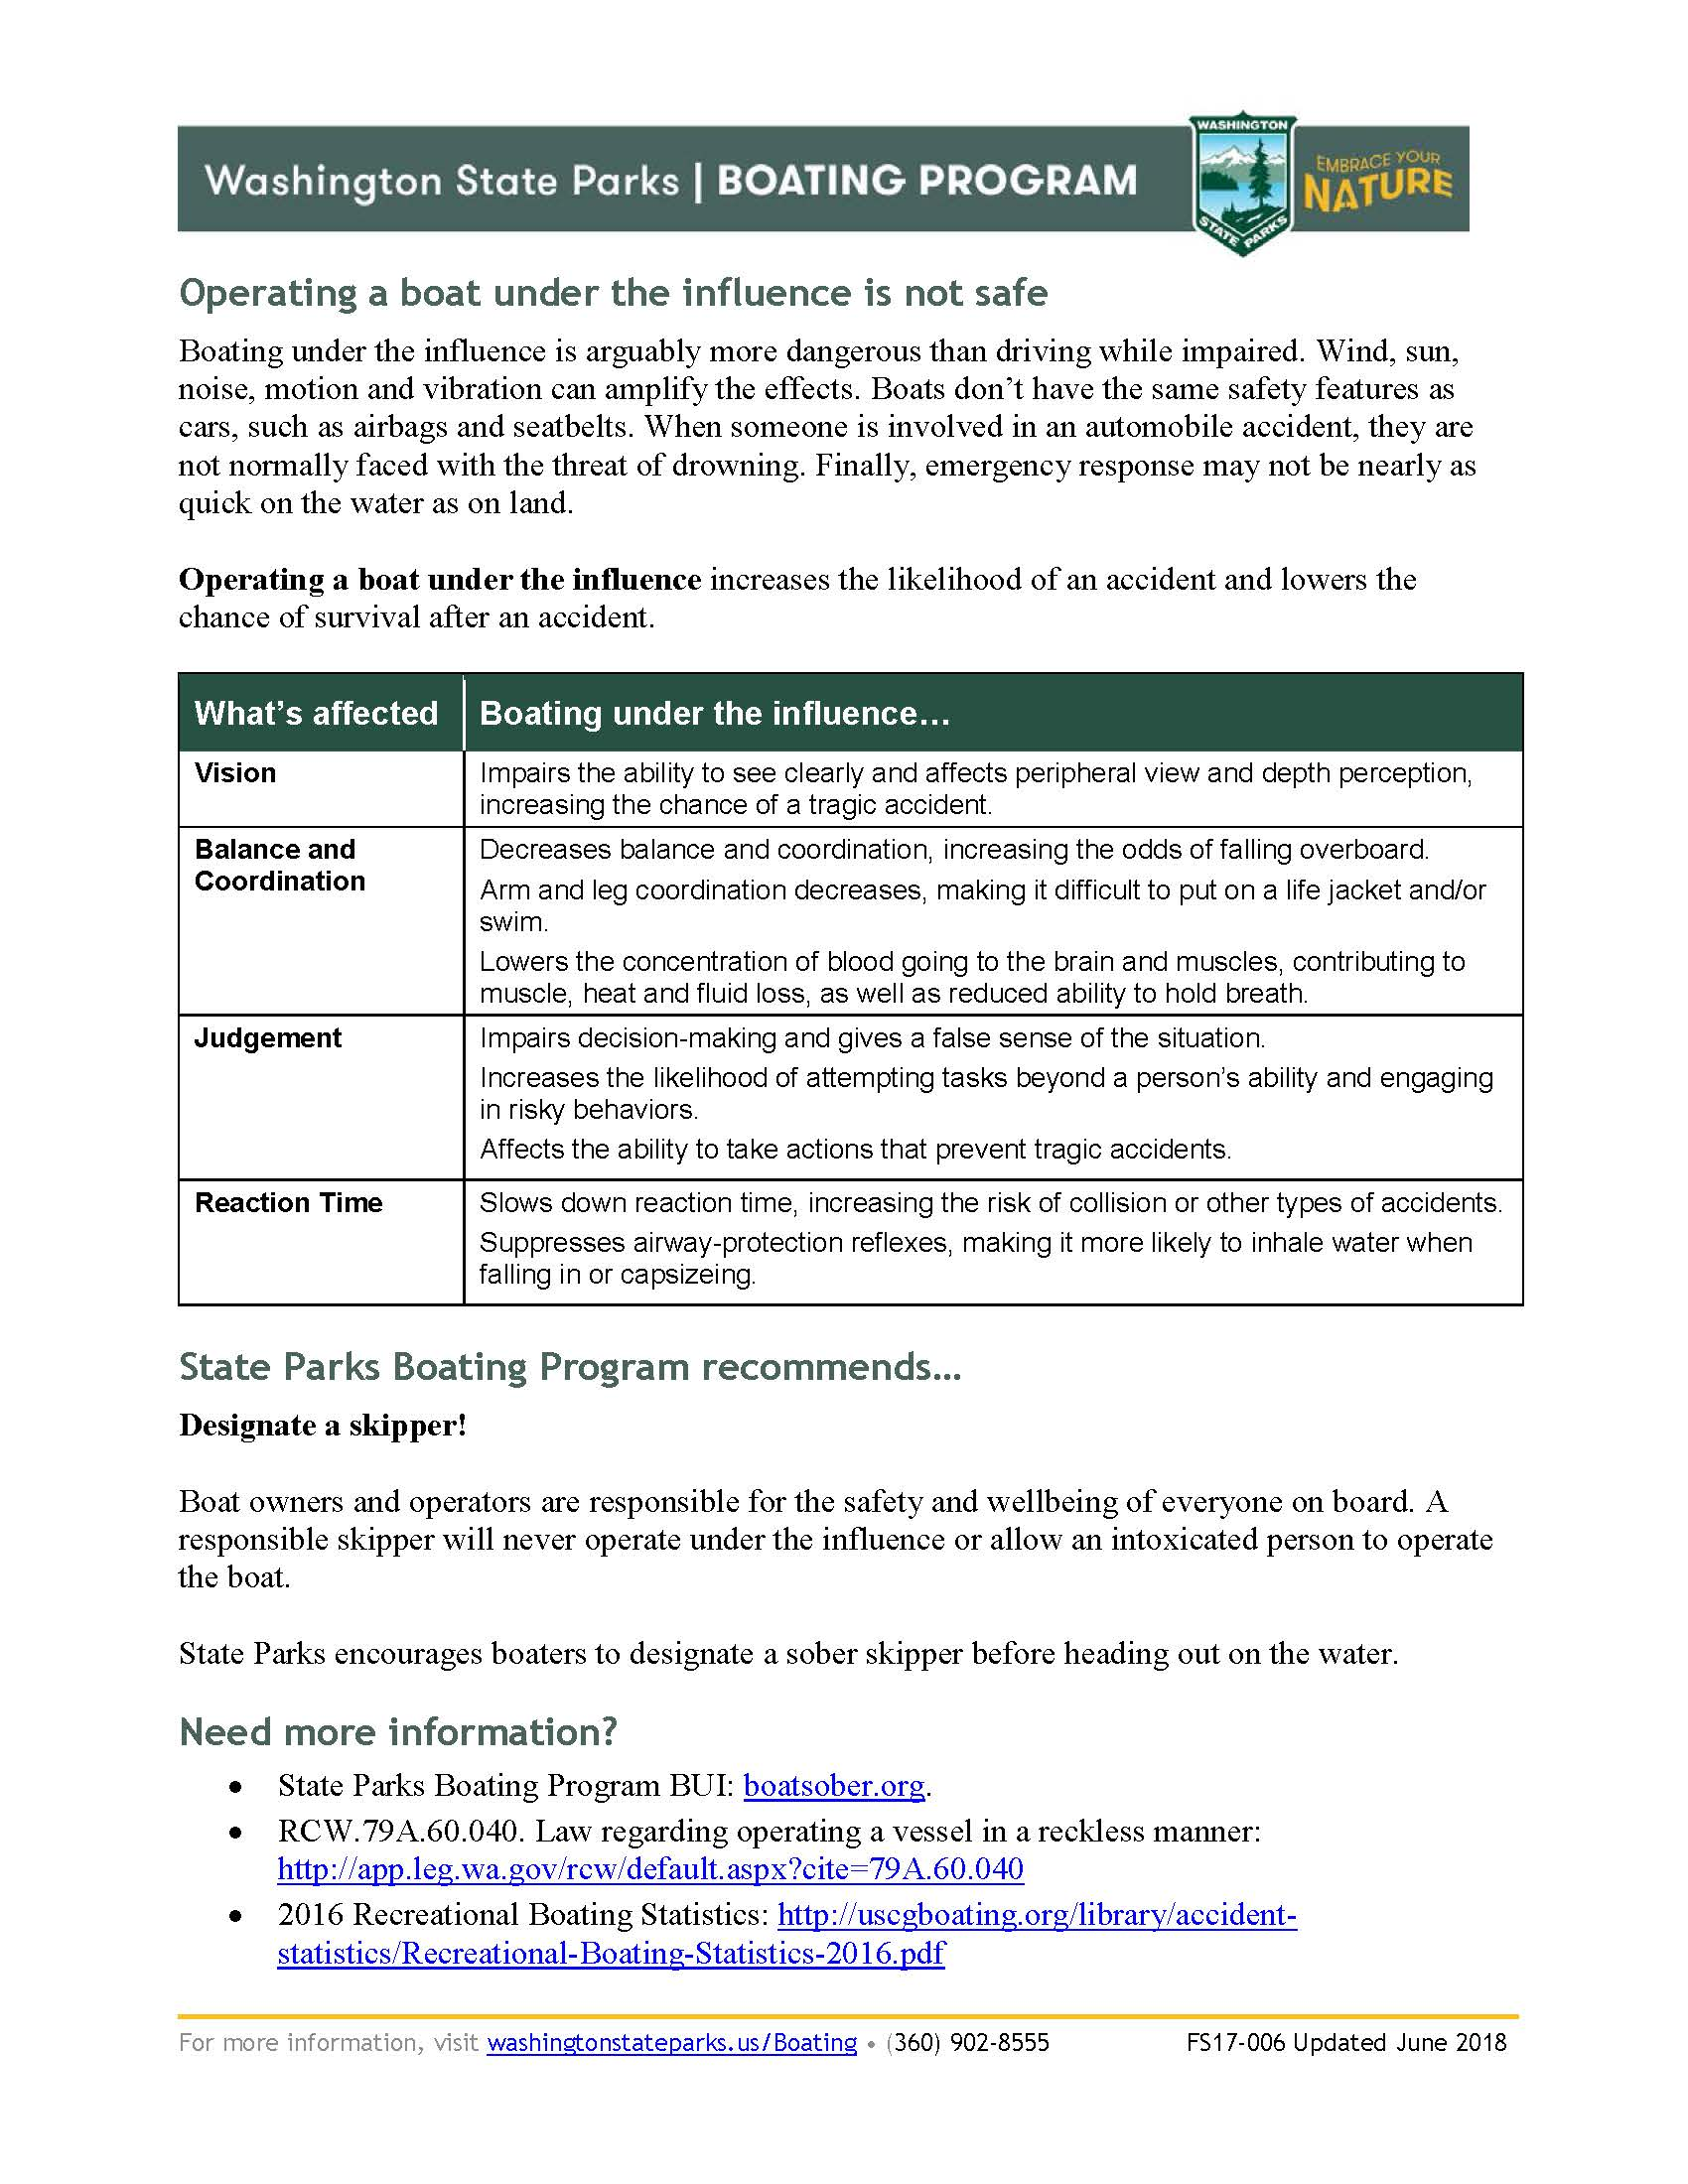 FS18-006_Boating Under the Influence Fact Sheet_Page_2